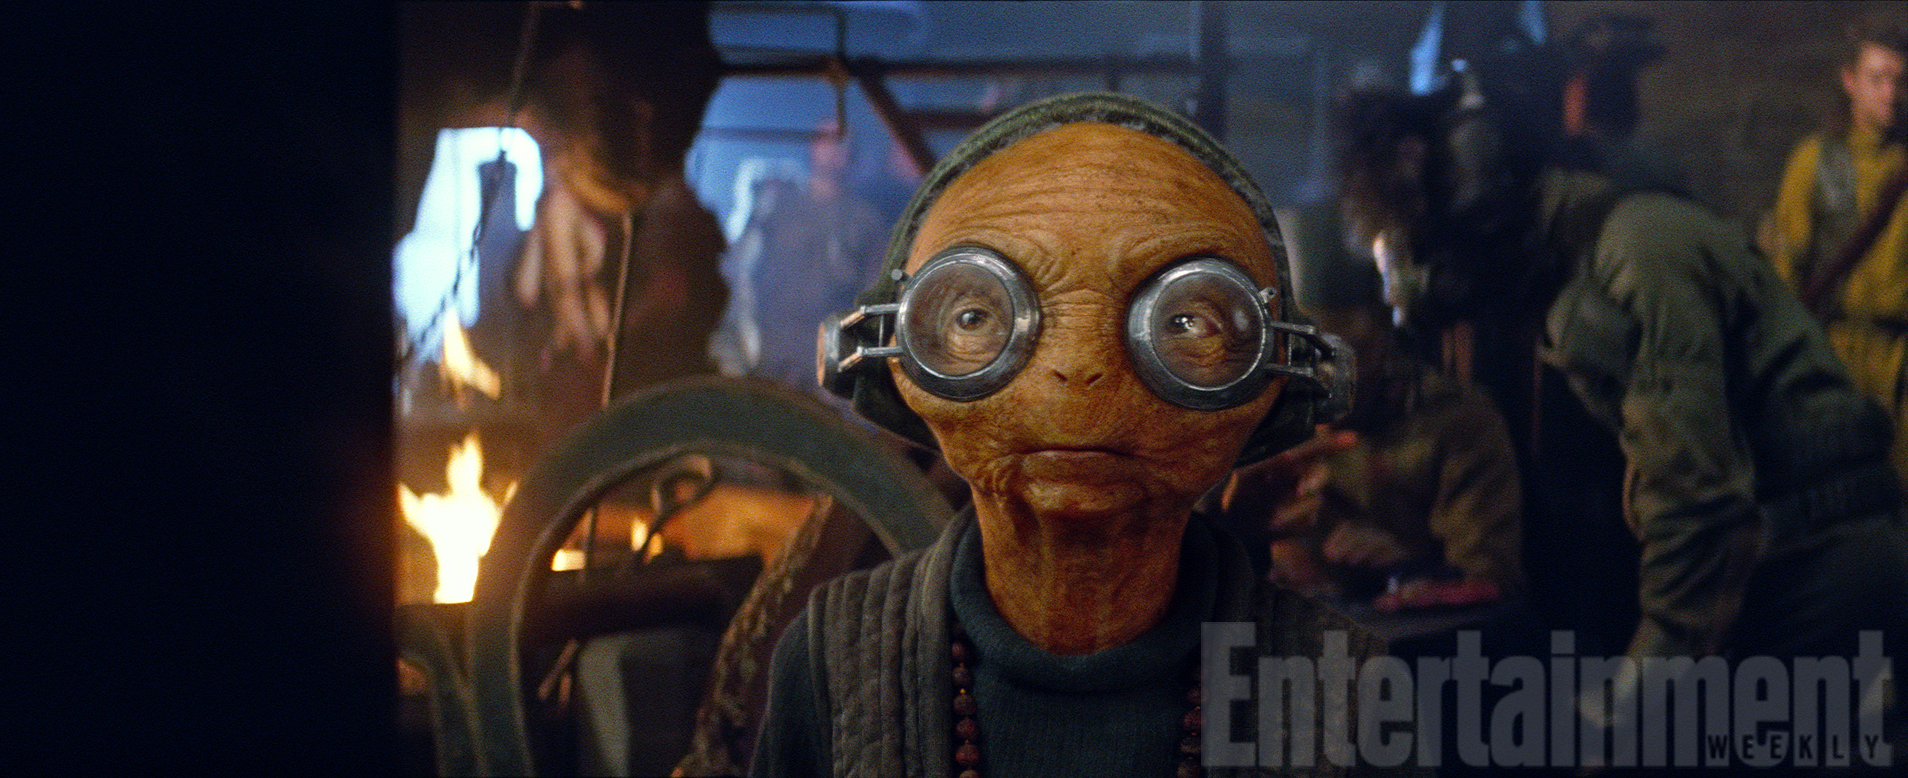 star-wars-force-awakens-maz-kanata-official-photo